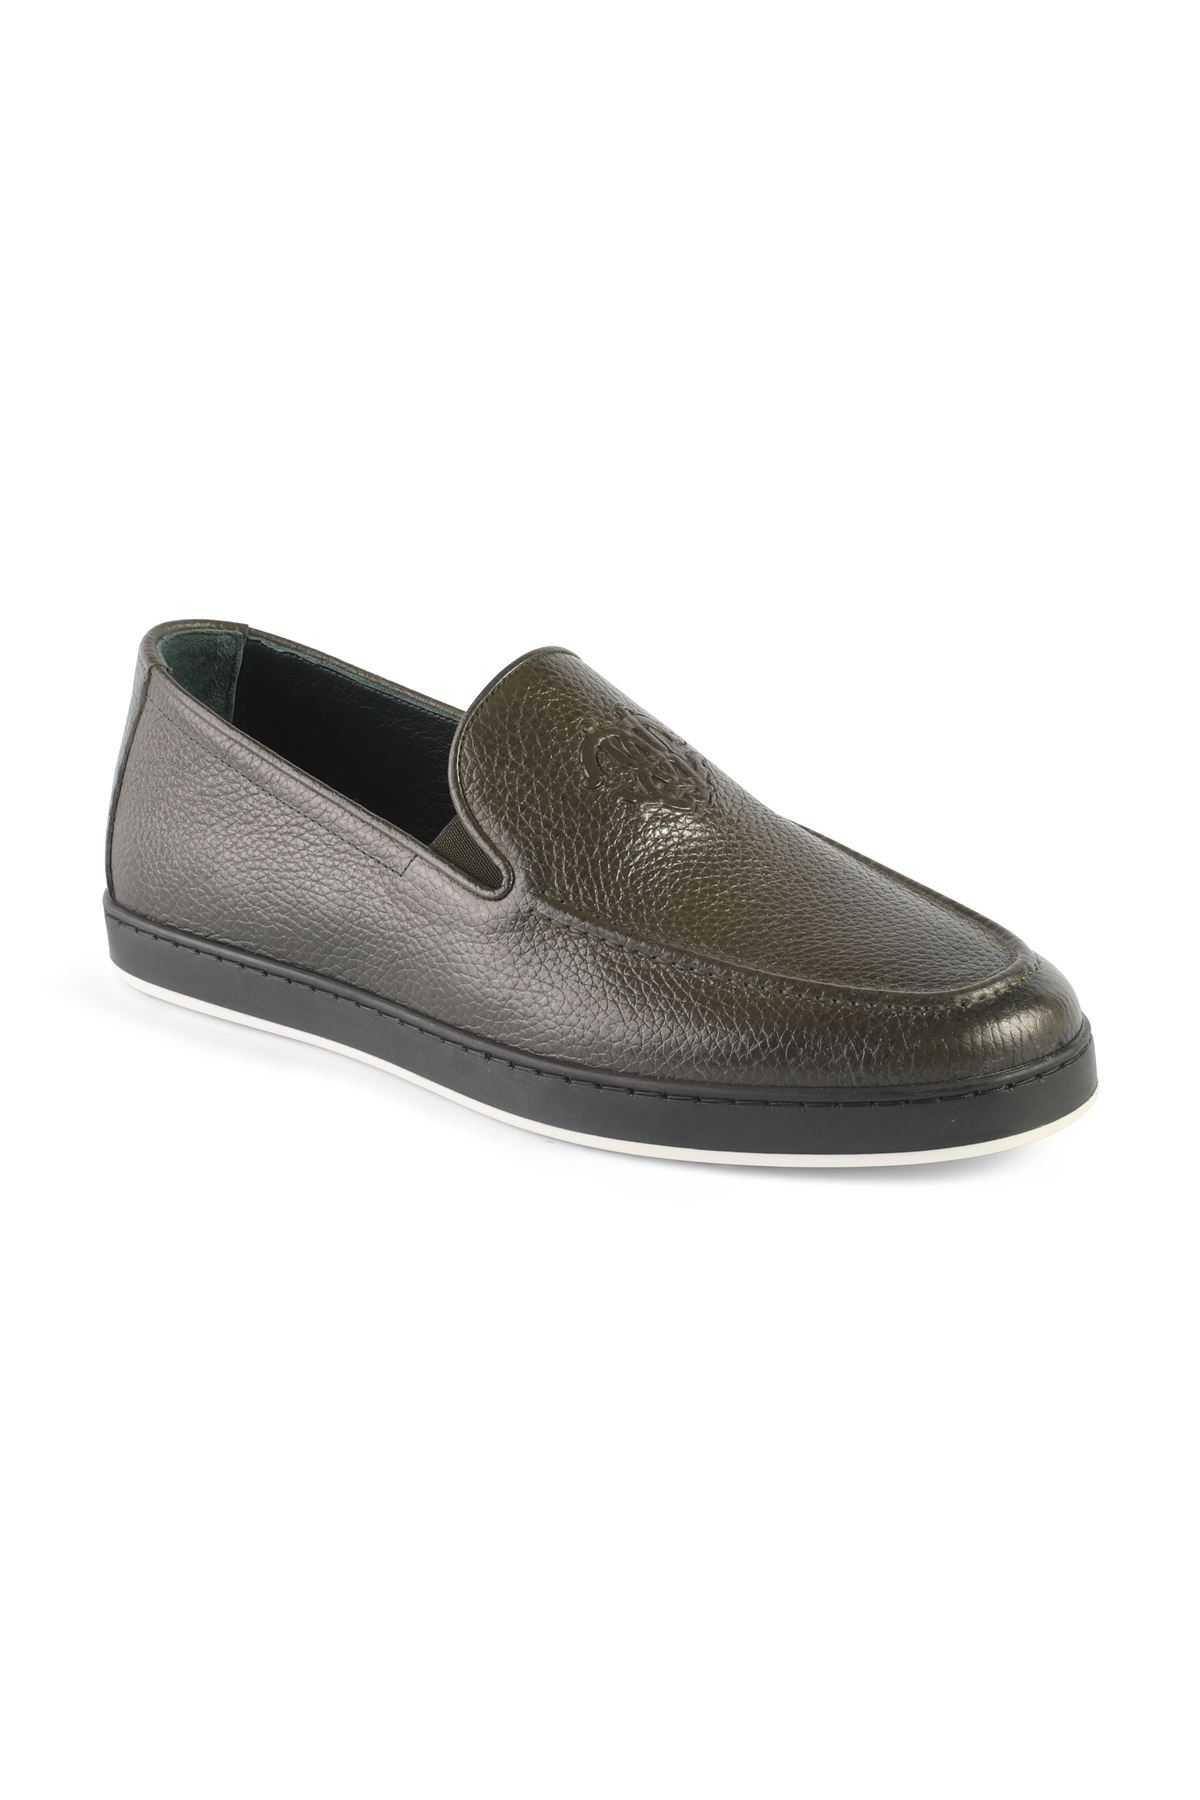 Libero T1254 Green Loafer Shoes